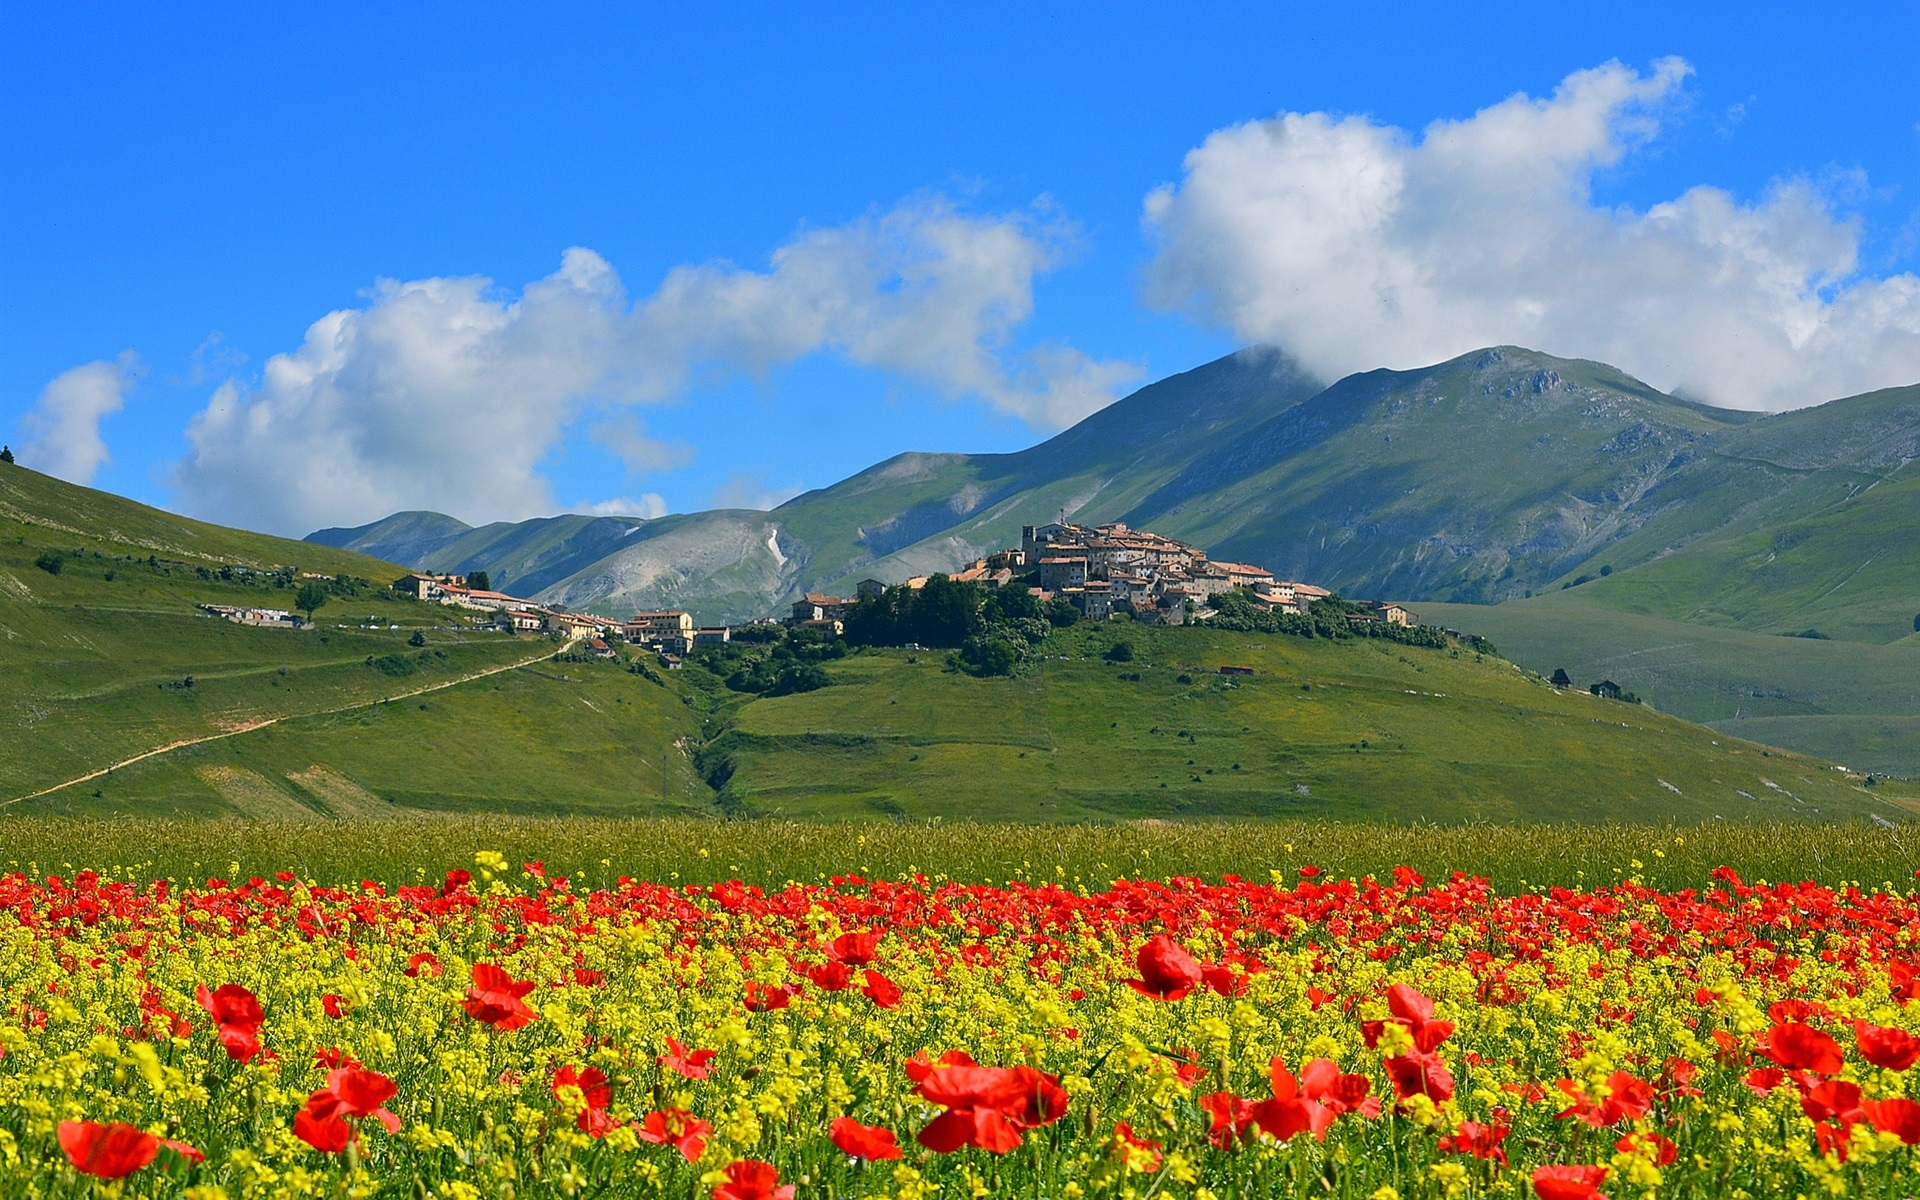 Free Wallpaper Download For Pc 3d Castelluccio Italy Mountains Poppies Flowers Village